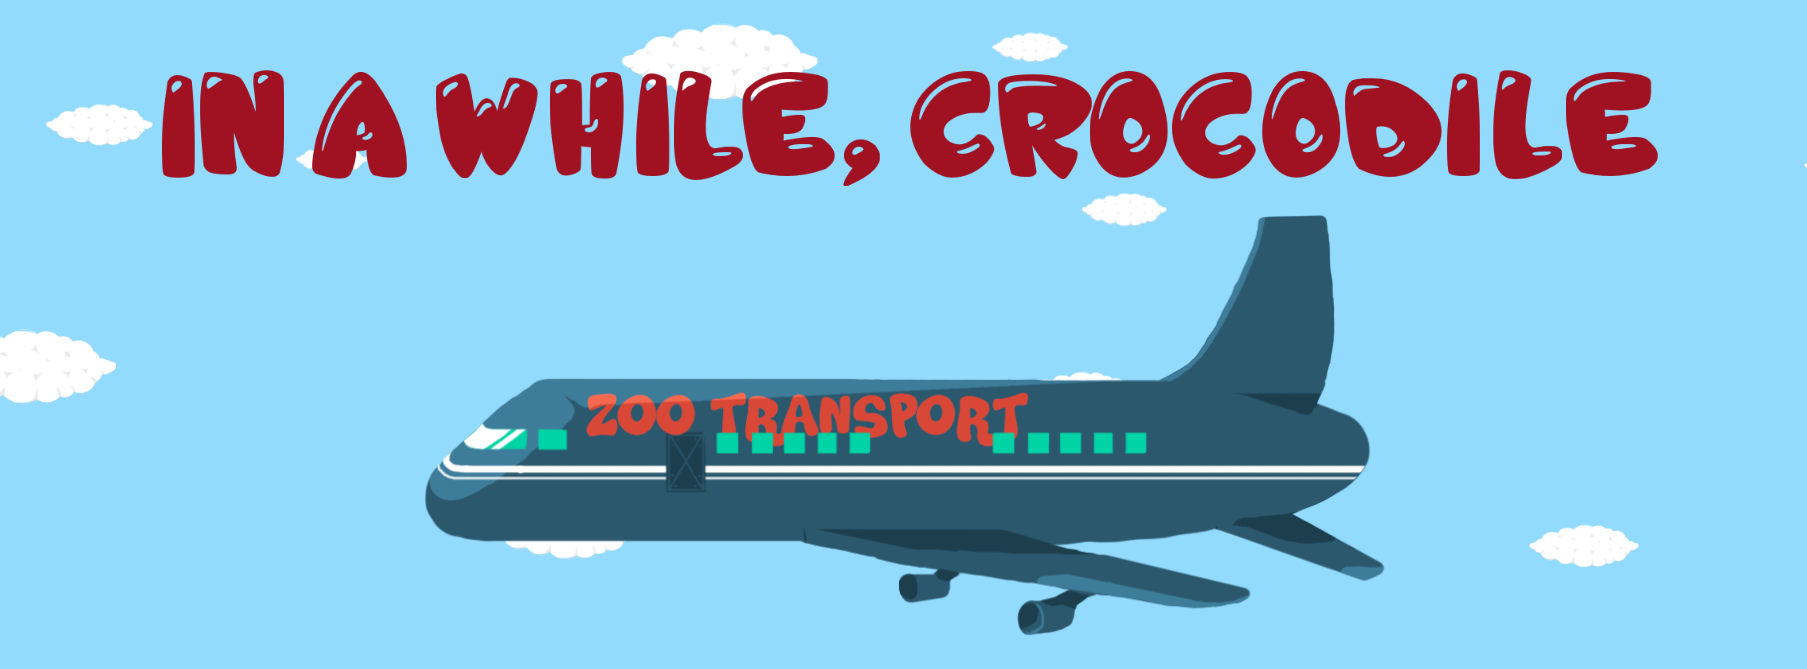 In a While, Crocodile